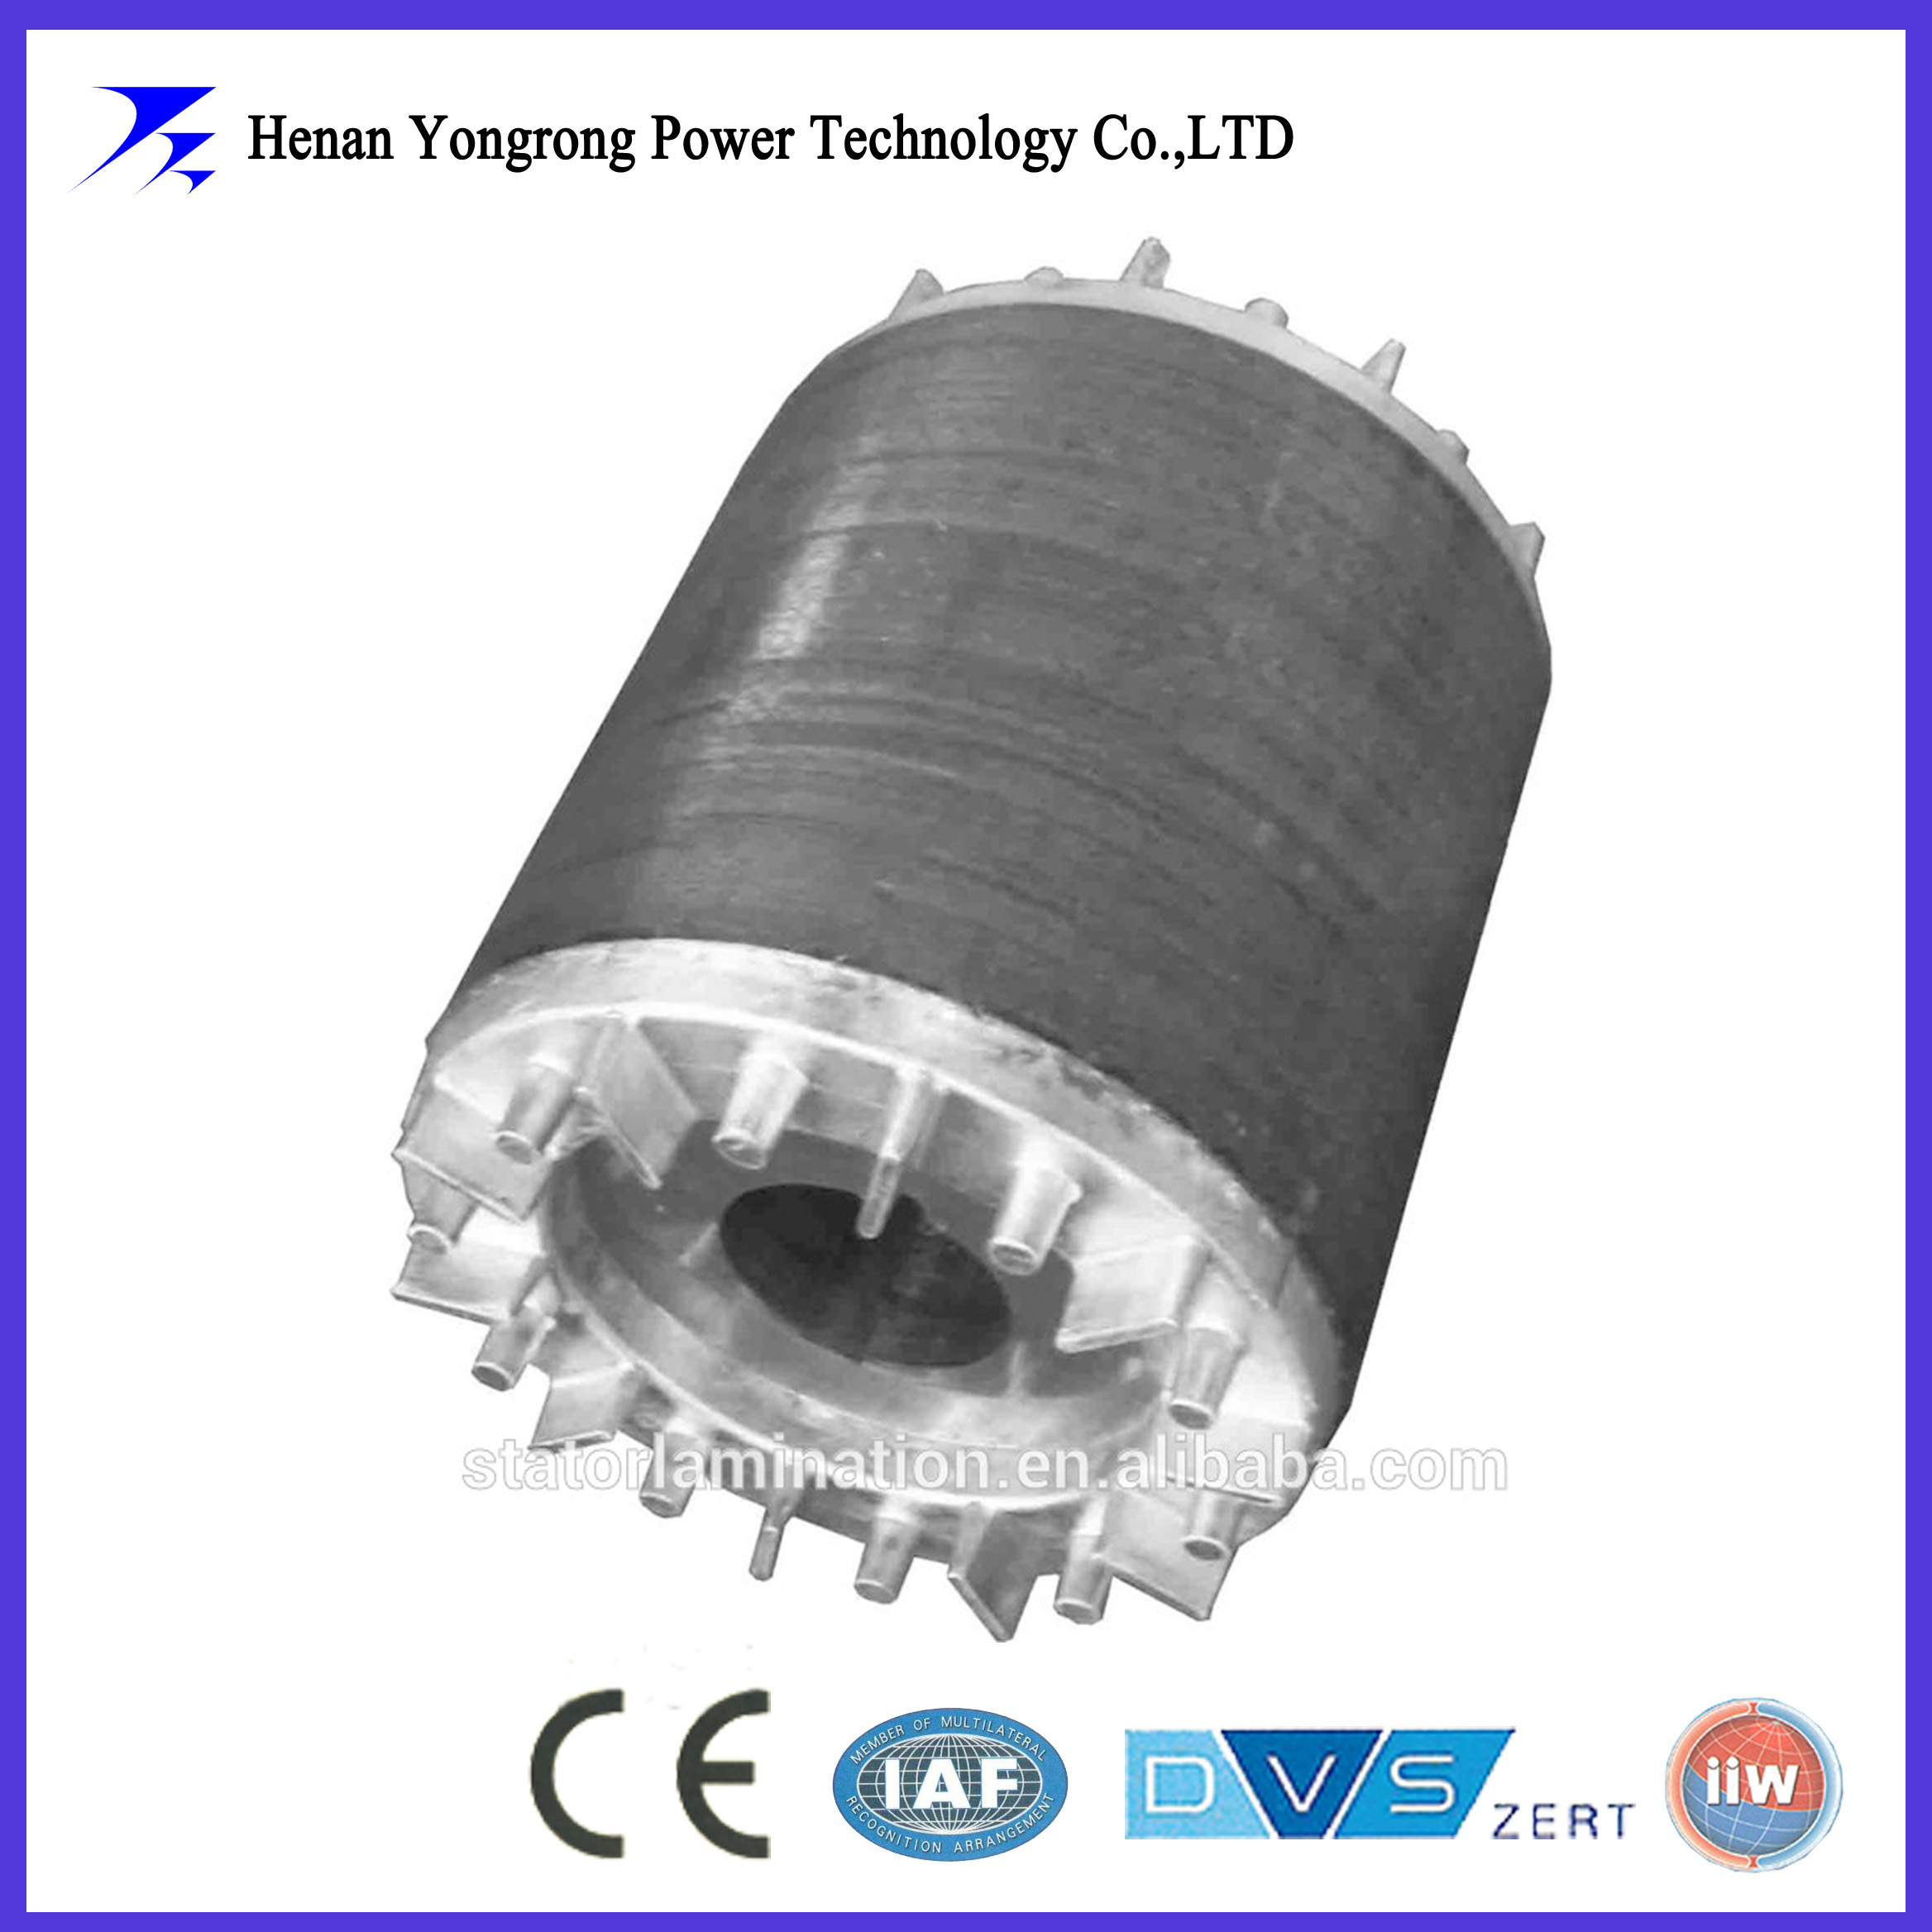 Rotor stamping lamination core manufacturer China factory